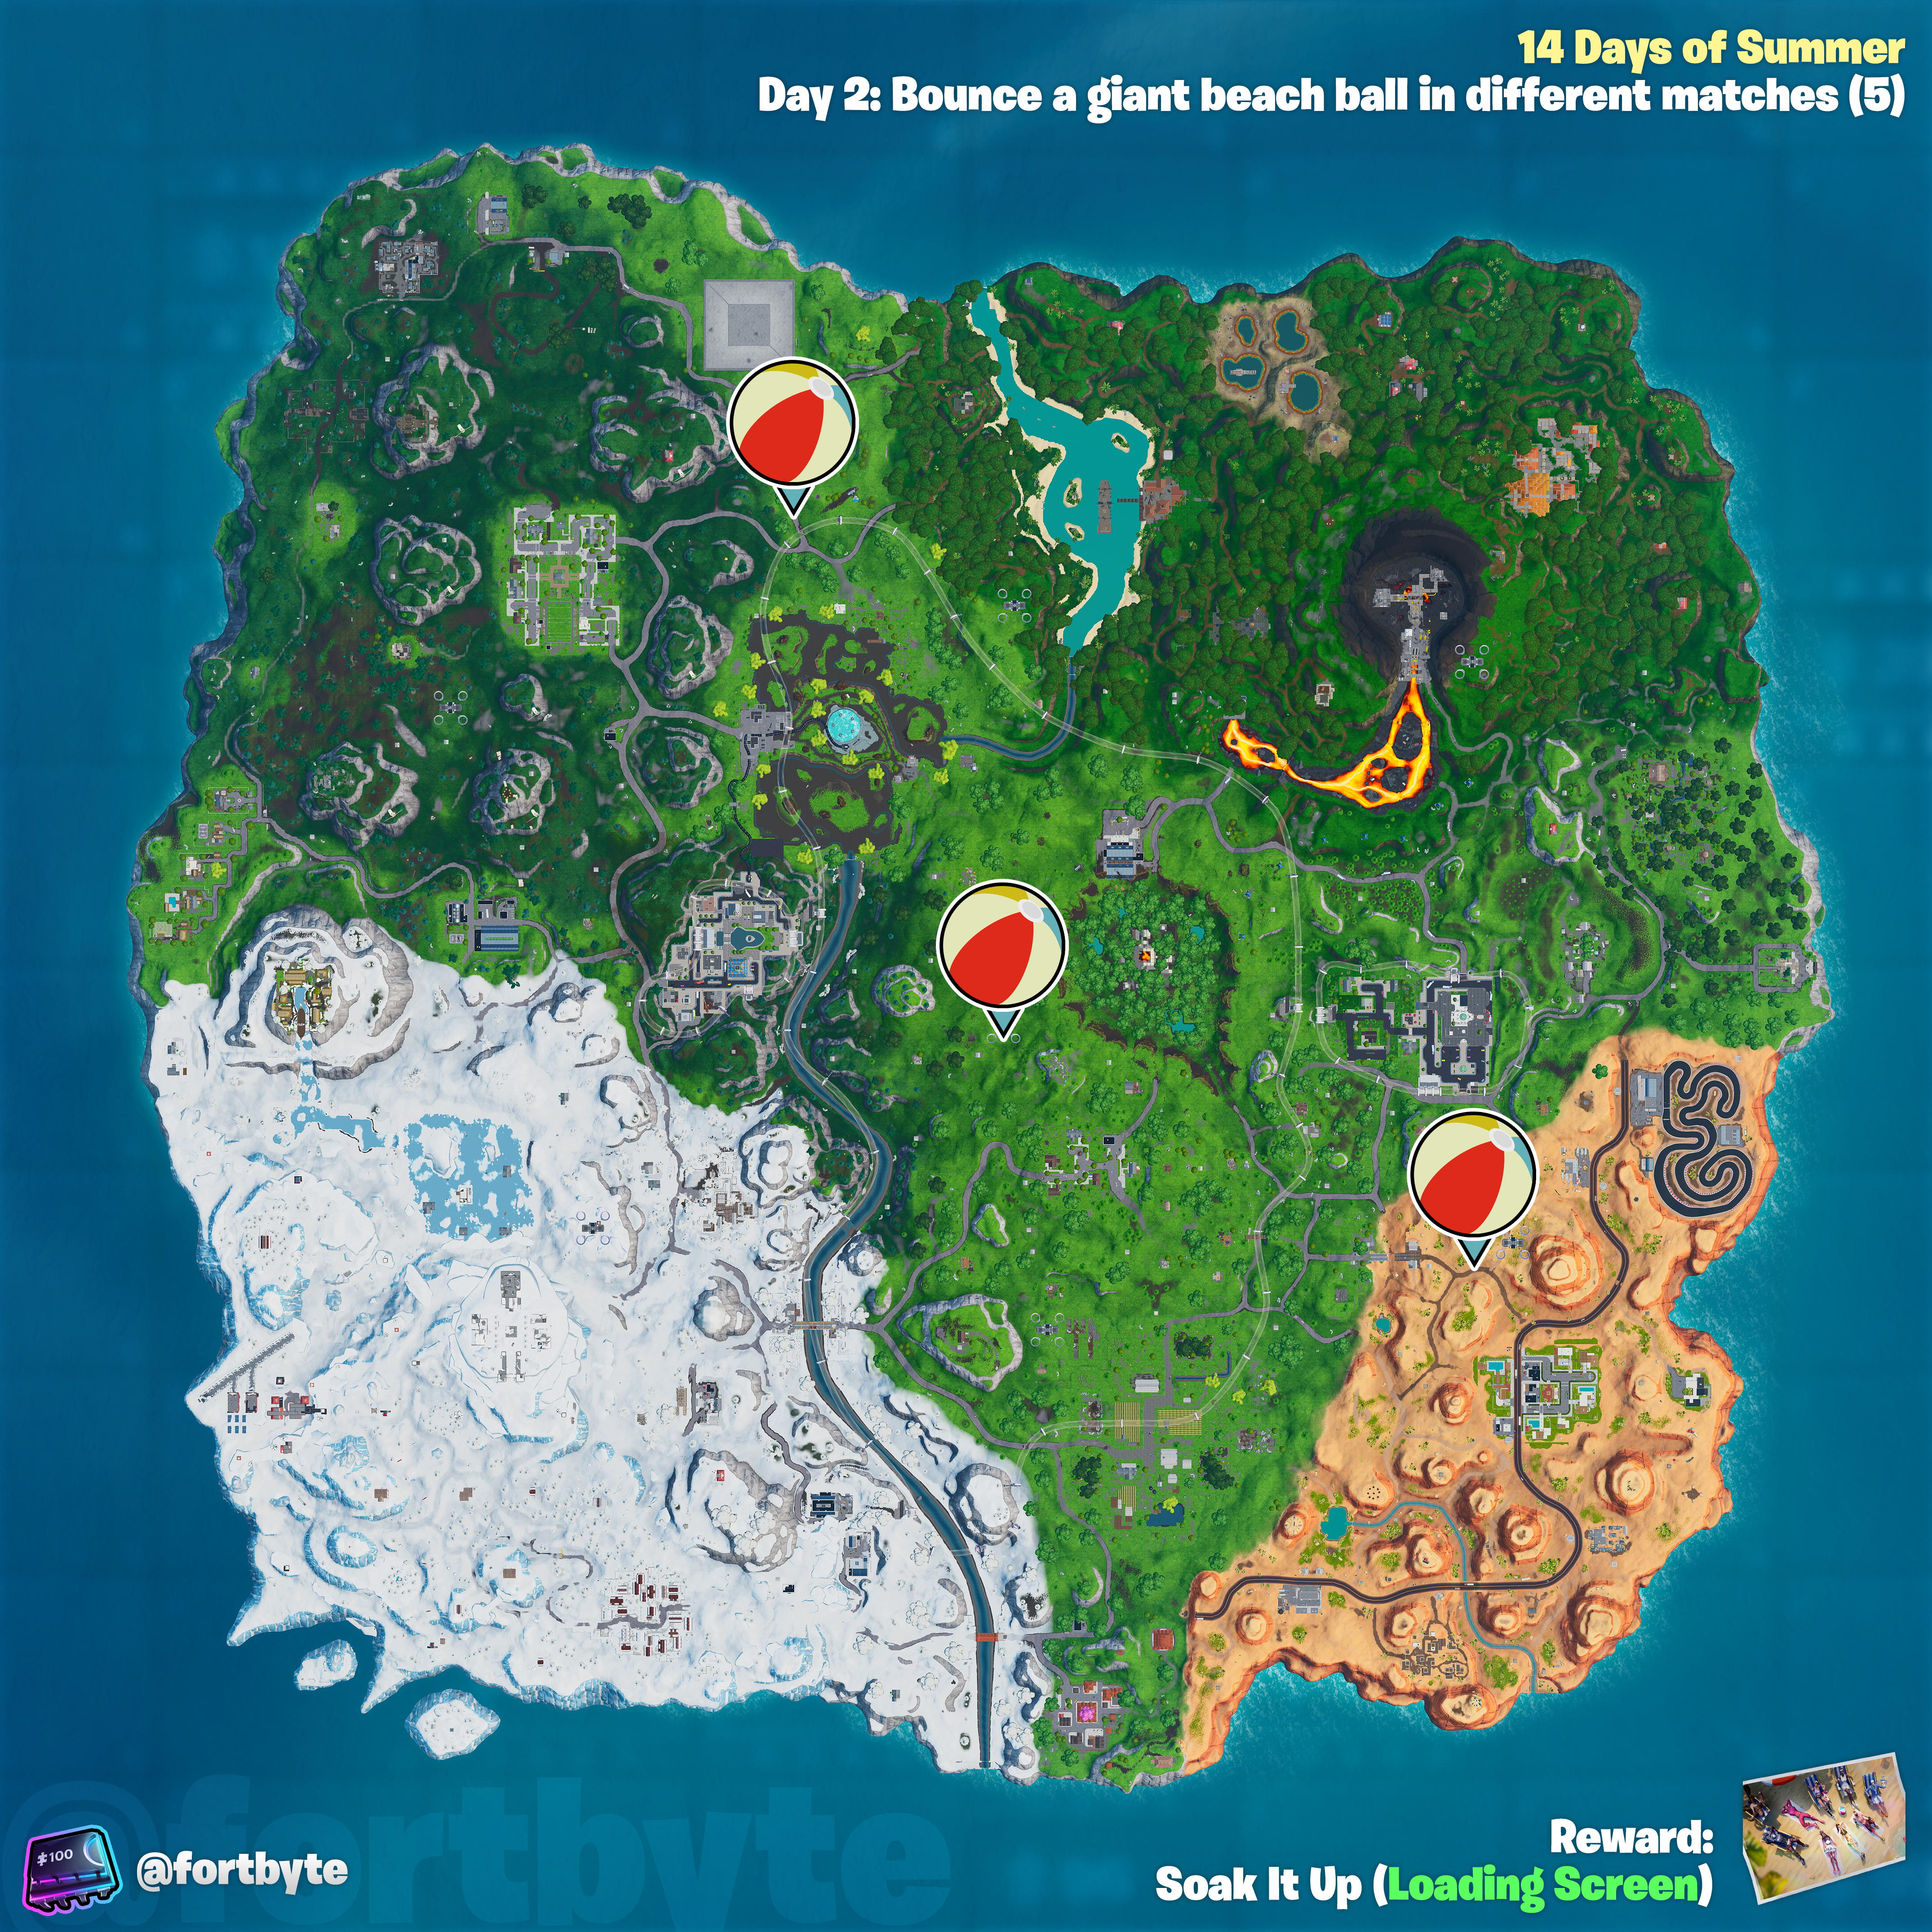 , Fortnite 14 Days of Summer – Bounce a giant beach ball in different matches location guide, AllYourGames.com, AllYourGames.com